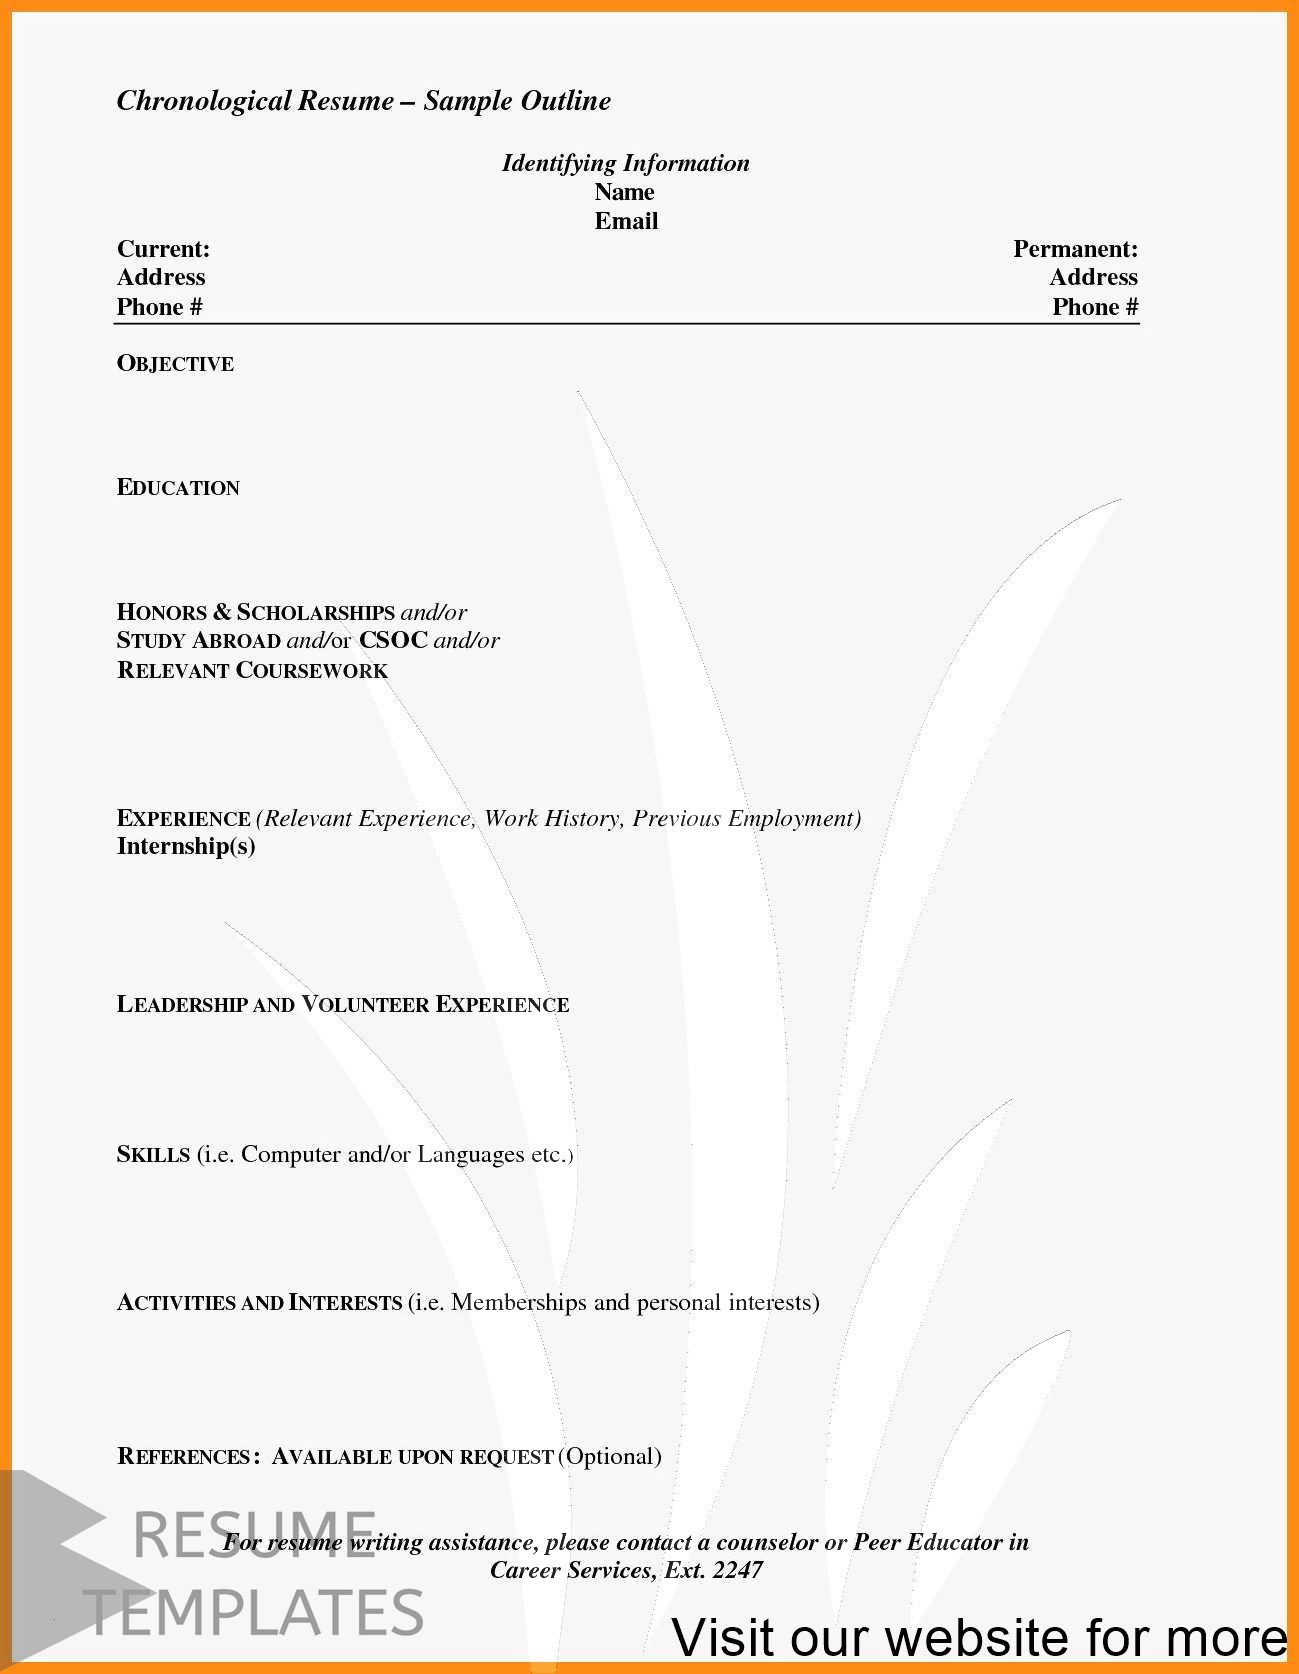 Resume Example Format Professional In 2020 Resume Examples